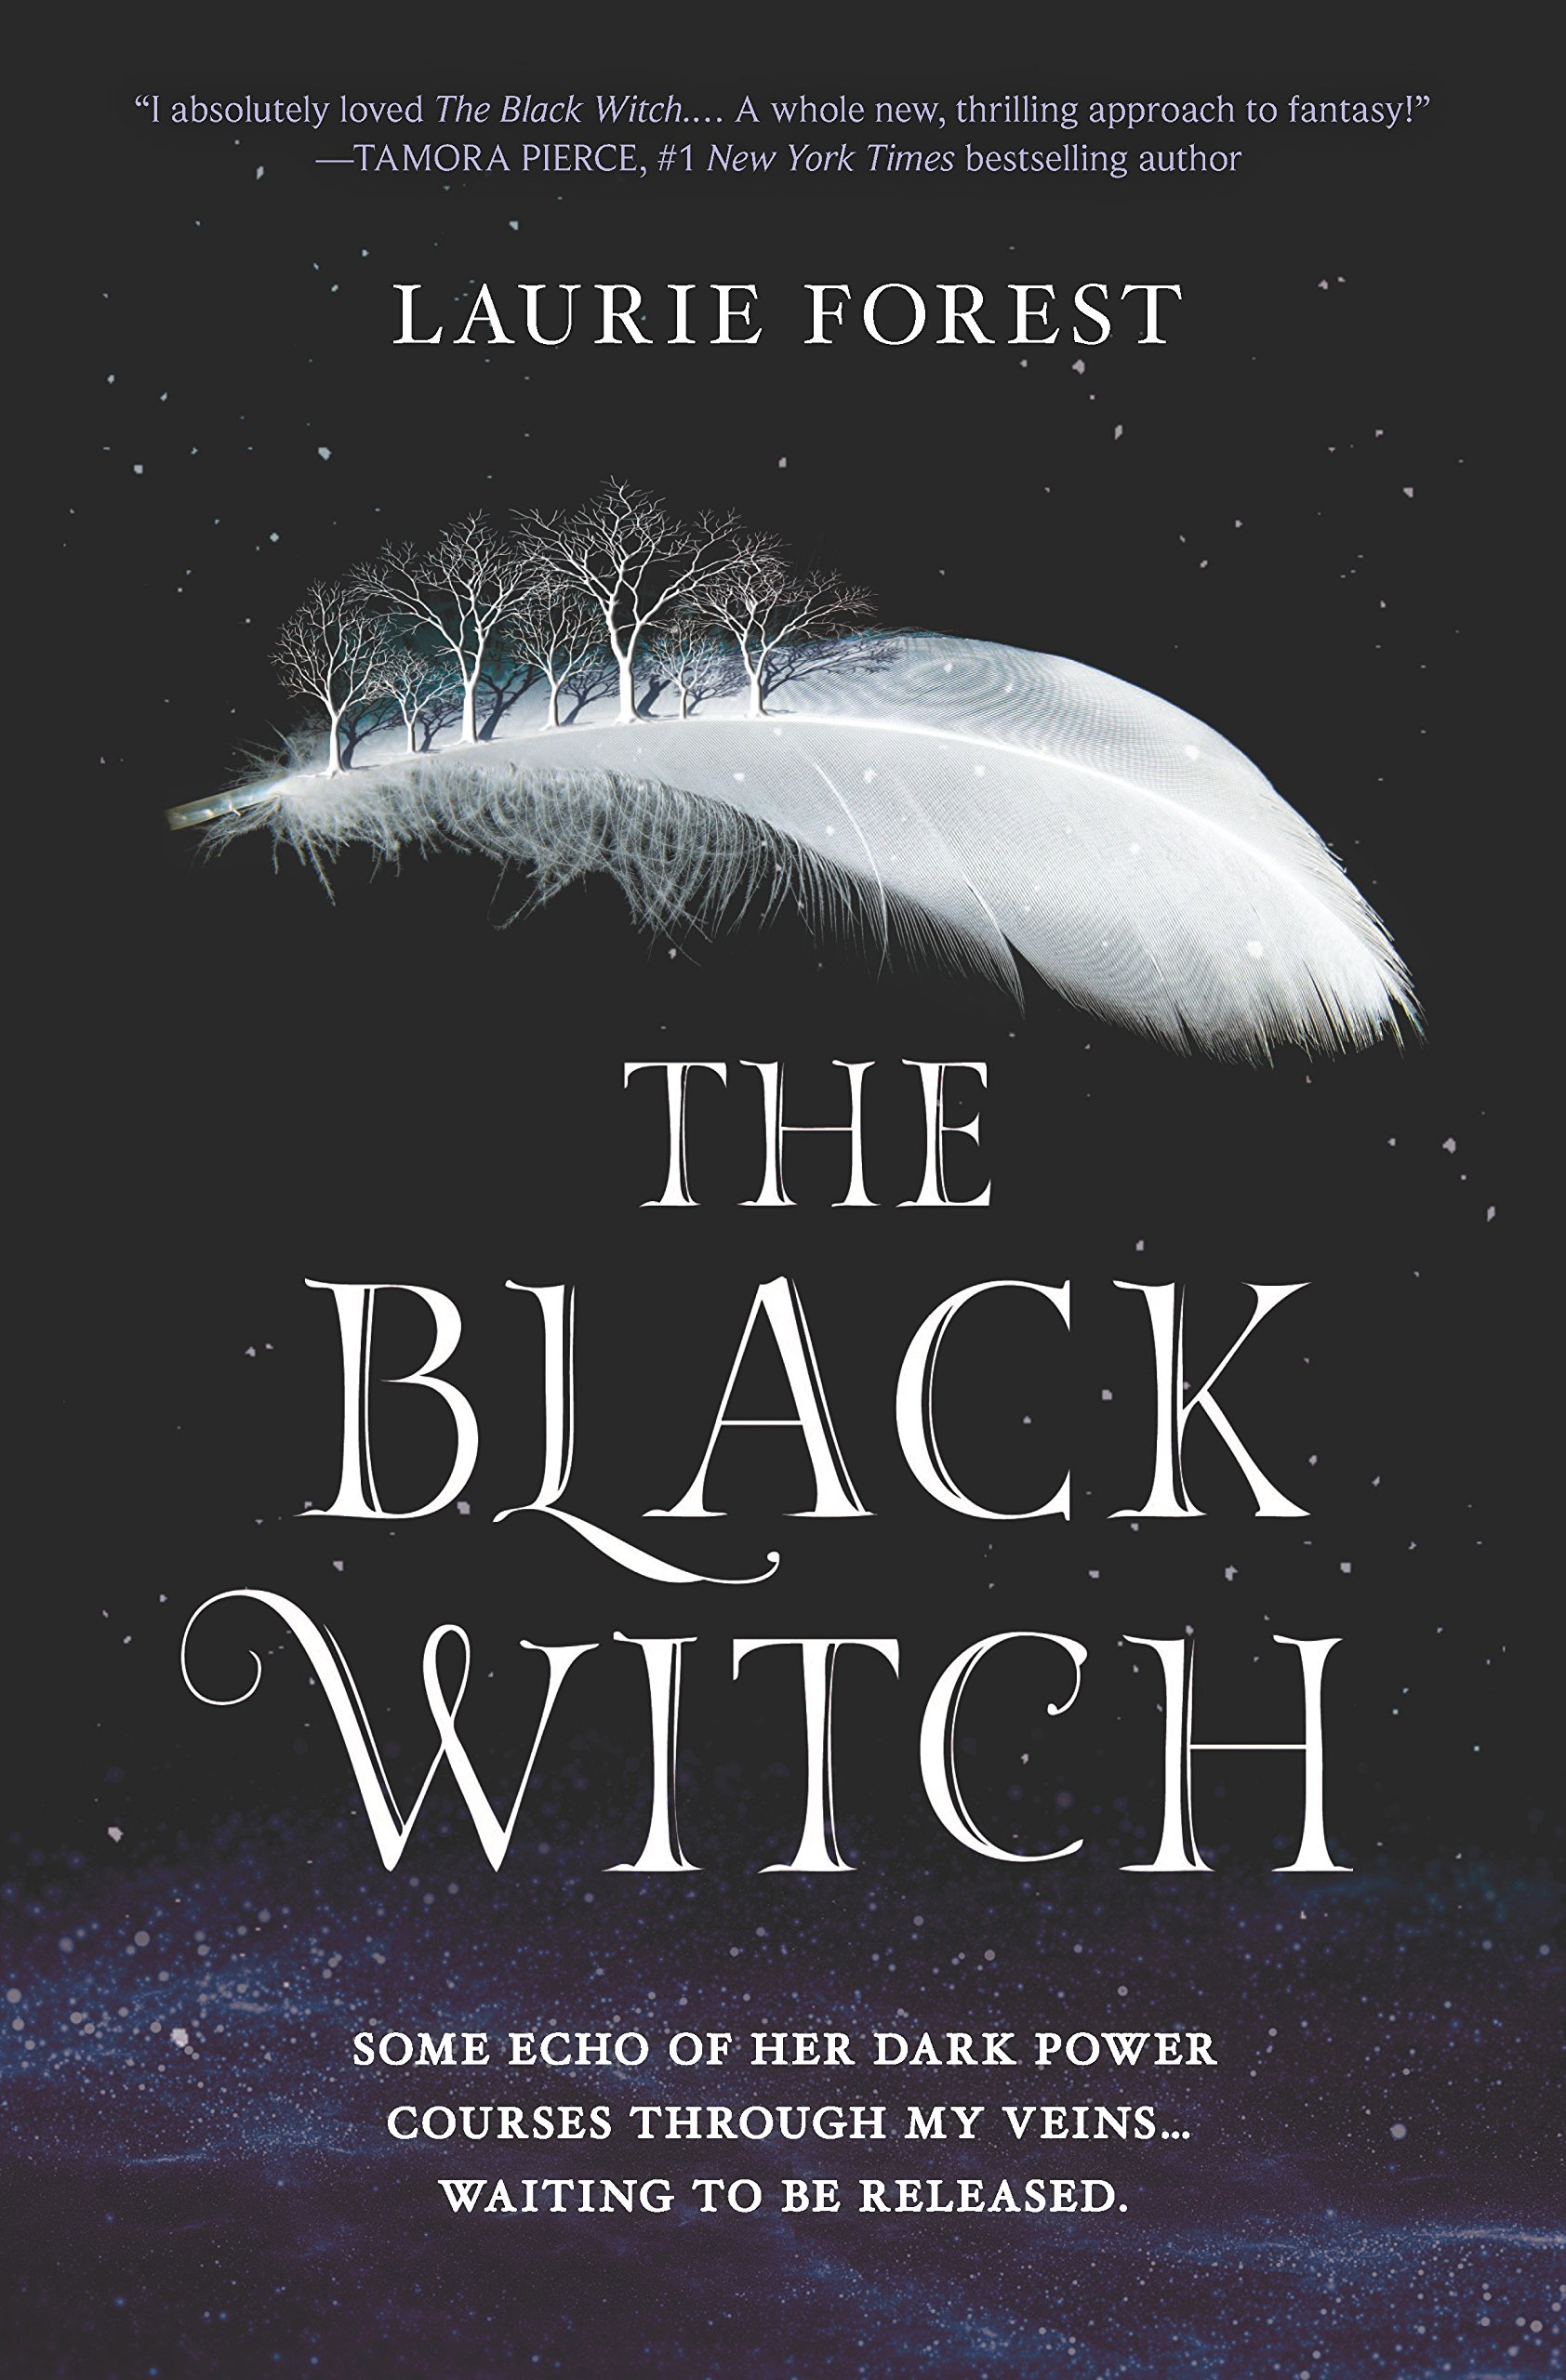 Amazon.com: The Black Witch: An Epic Fantasy Novel (The Black ...